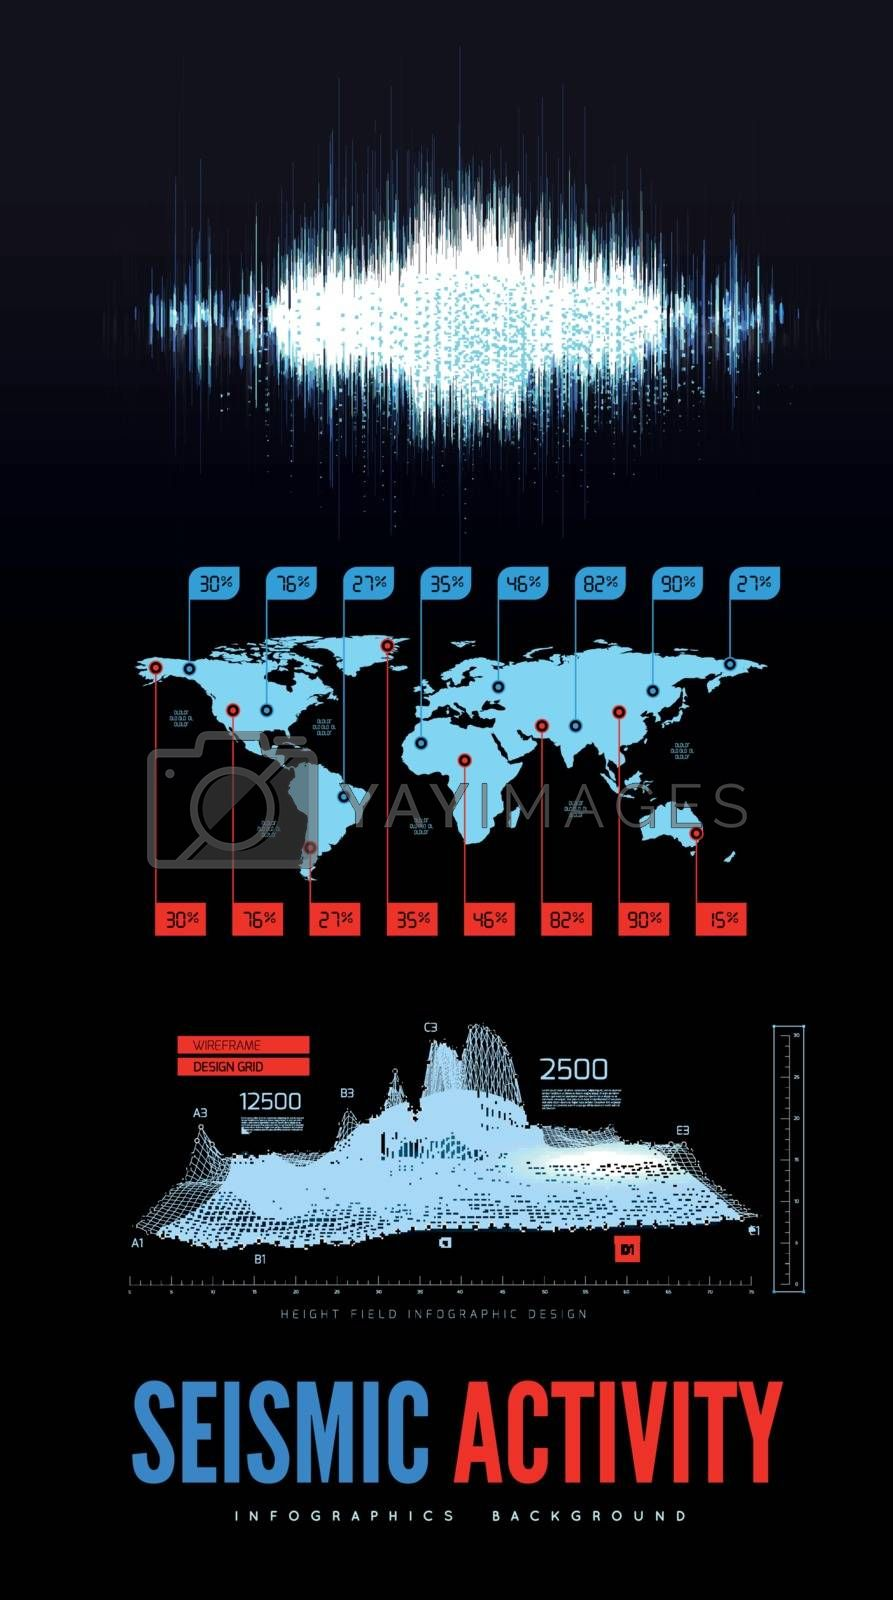 Seismic activity infographics vector illustration with sound waves, graphs and topological relief on blackbackground